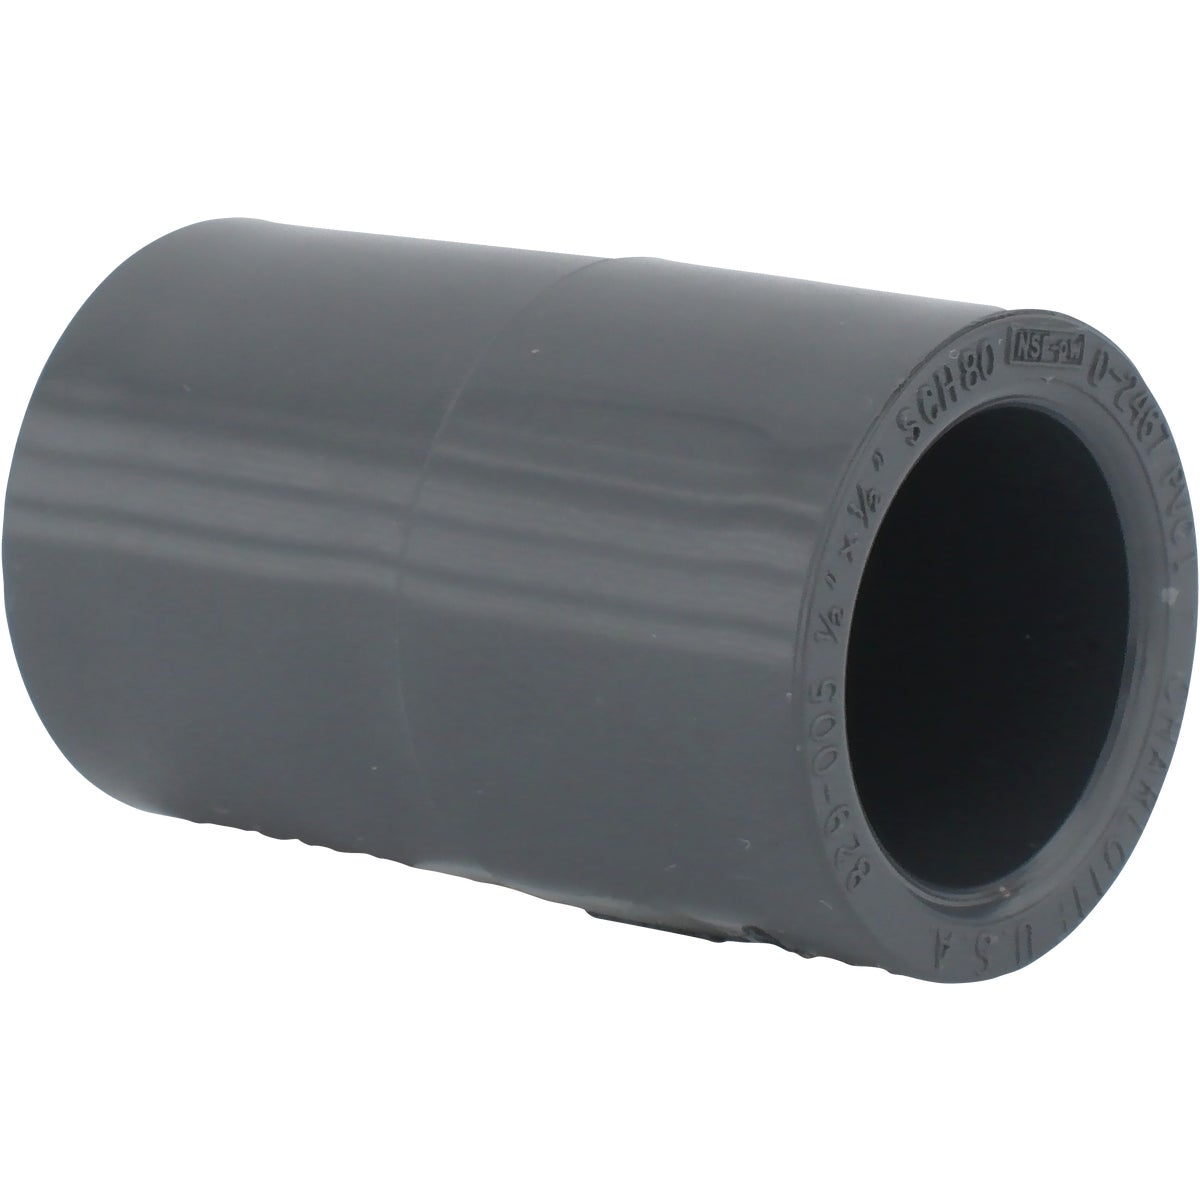 "1/2"" SCH80 PVC COUPLING - 301058 by Genova Inc"